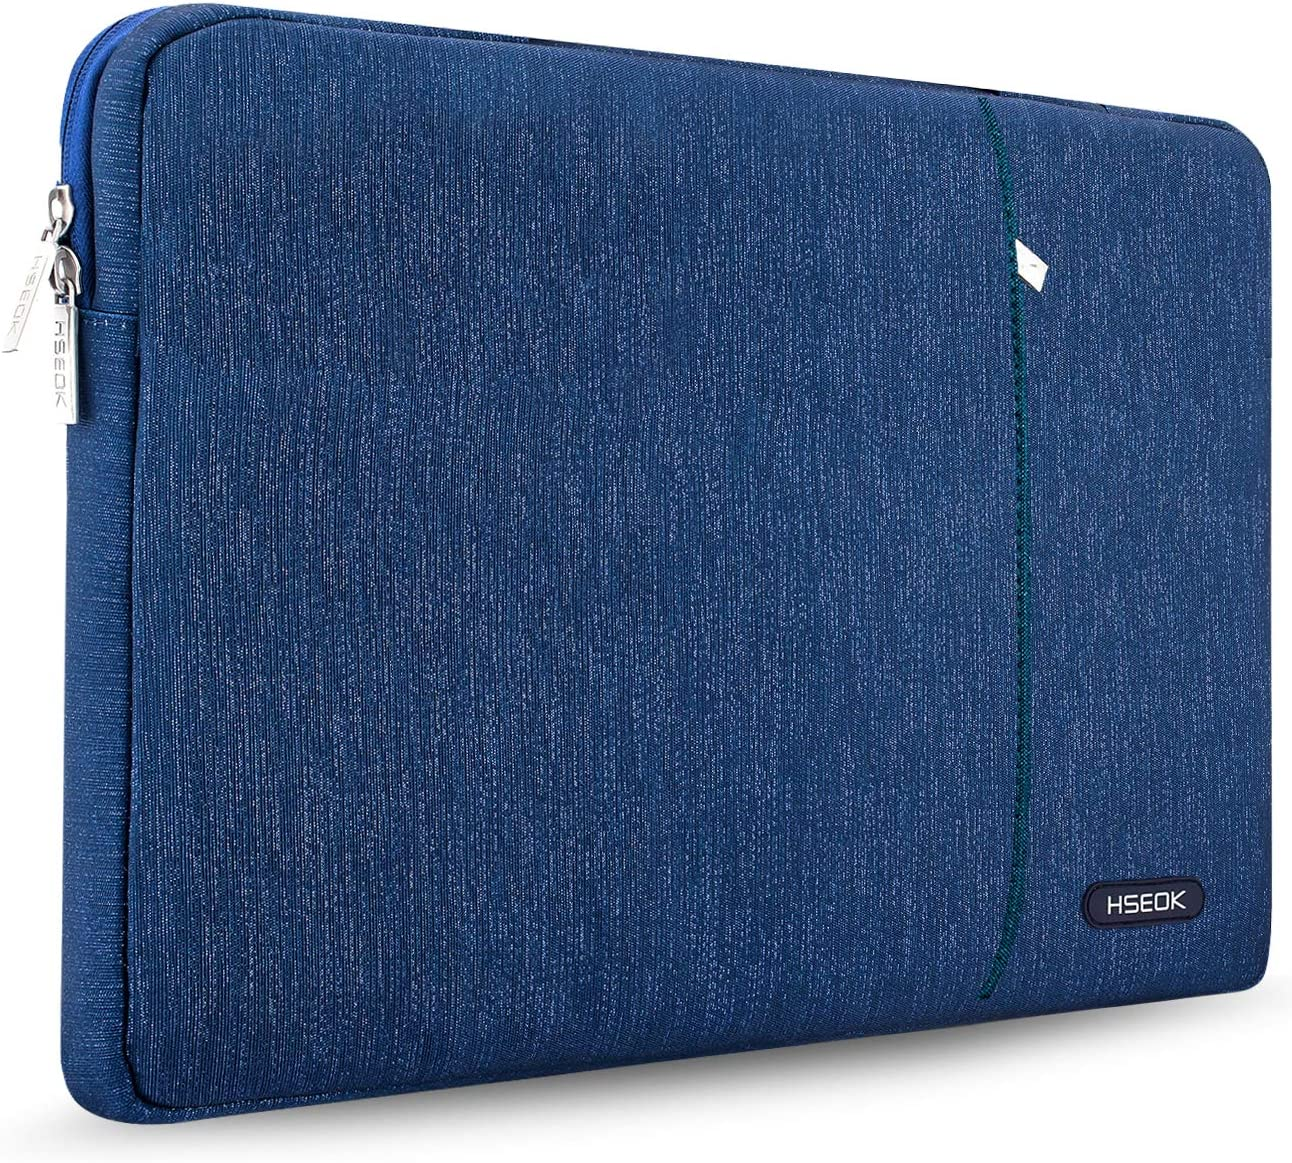 """HSEOK Laptop Sleeve 15-15.6 Inch Case for Most 15.6"""" MacBook Notebooks, Spill and Drop Resistant Carrying Case for HP Lenovo ASUS DELL Toshiba, Blue line"""